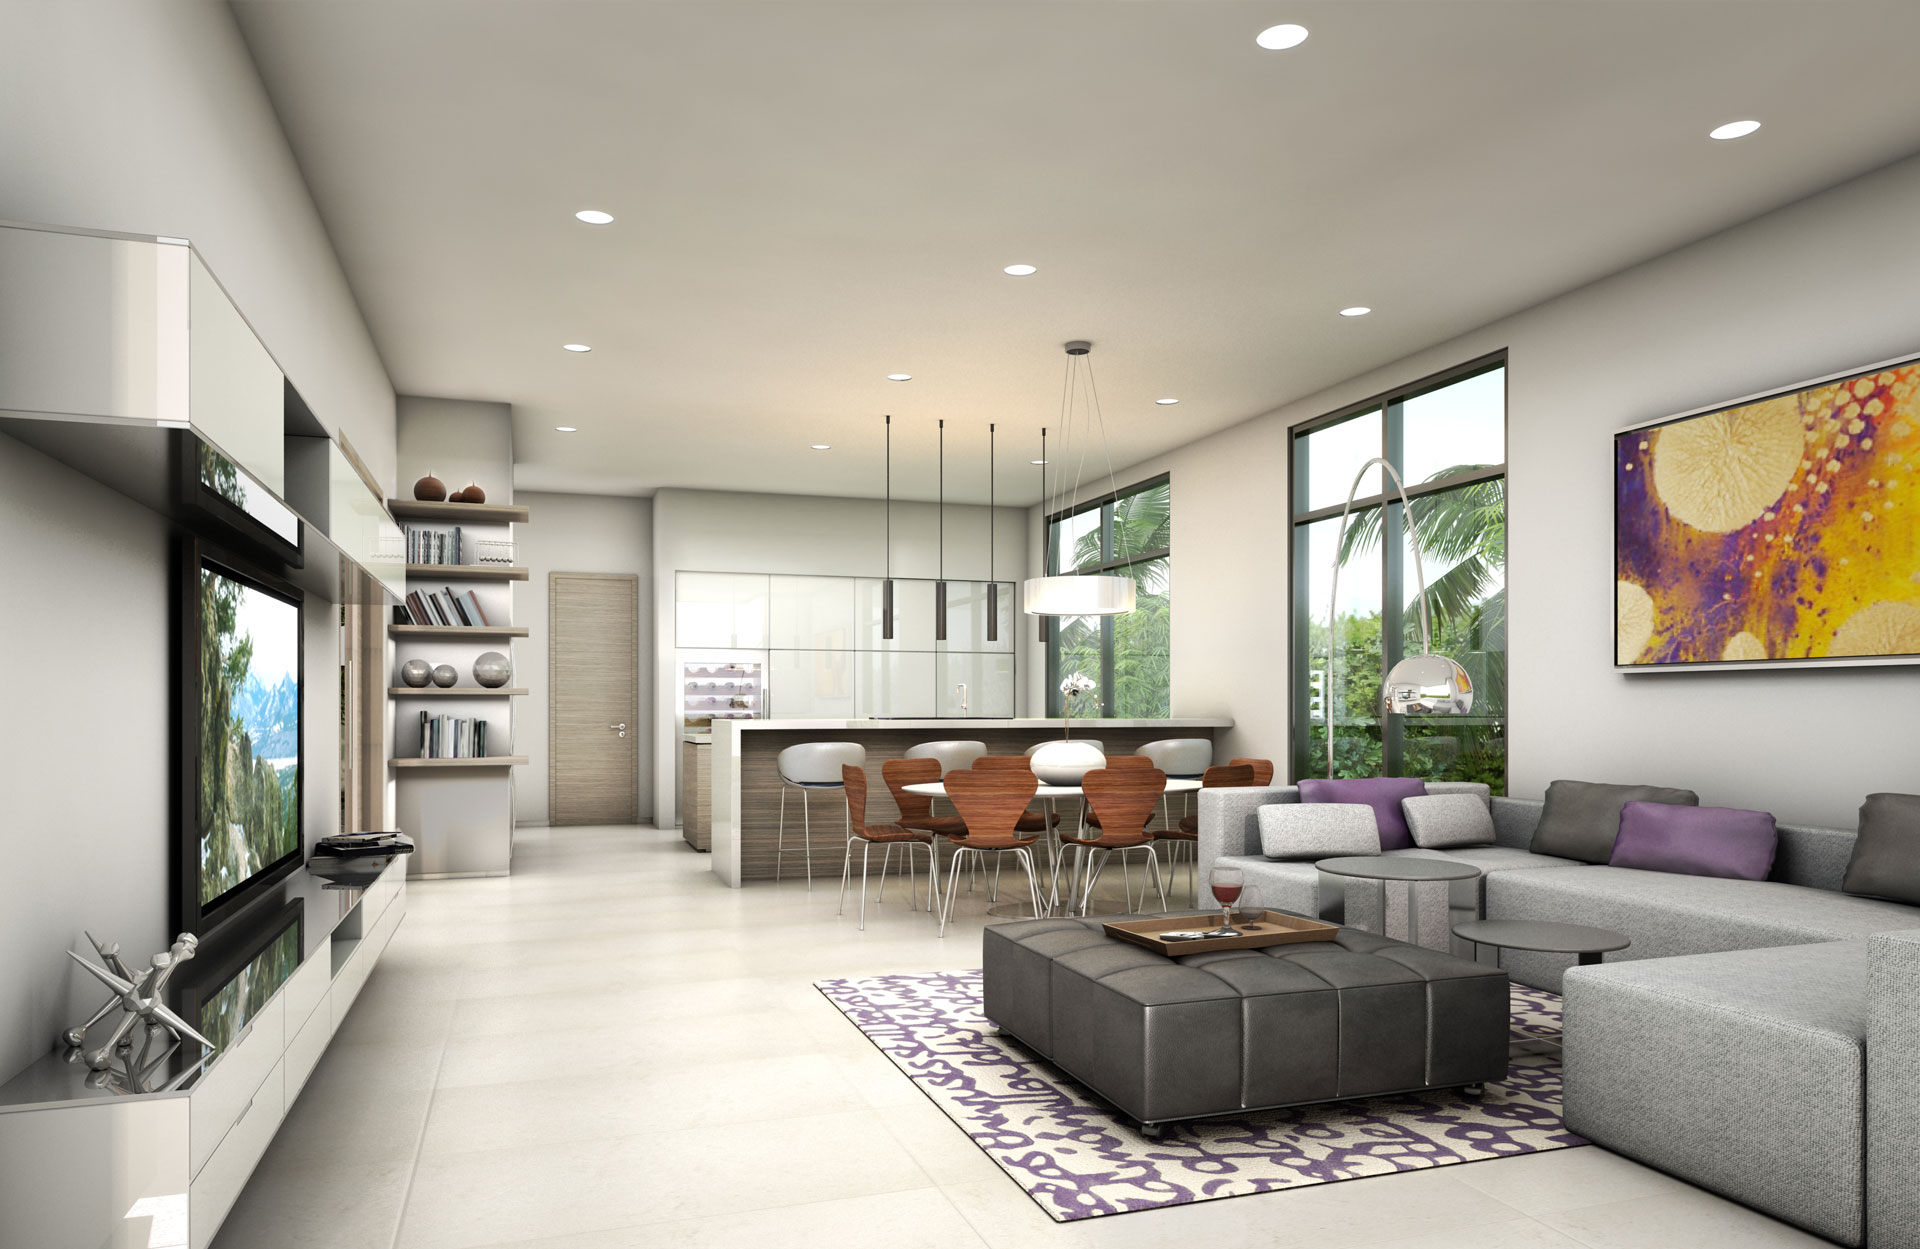 Interior Design side view living room project in 1350 Bay Harbor, Florida